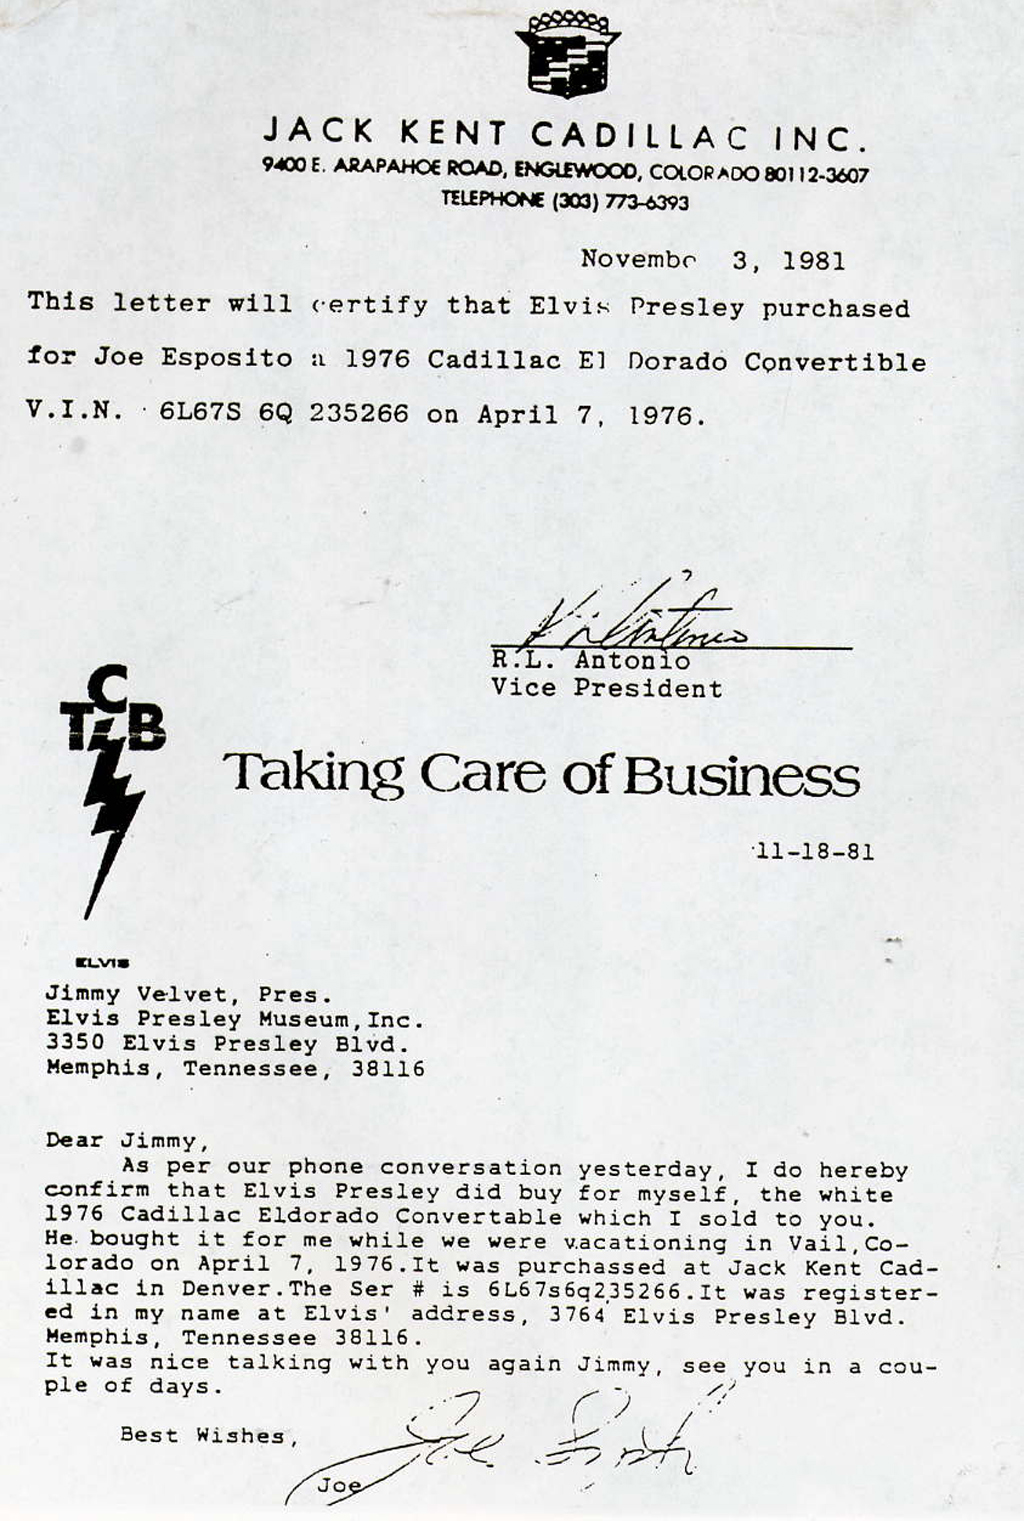 Certification Of Elvis Presley Purchase Of A 1976 Cadillac